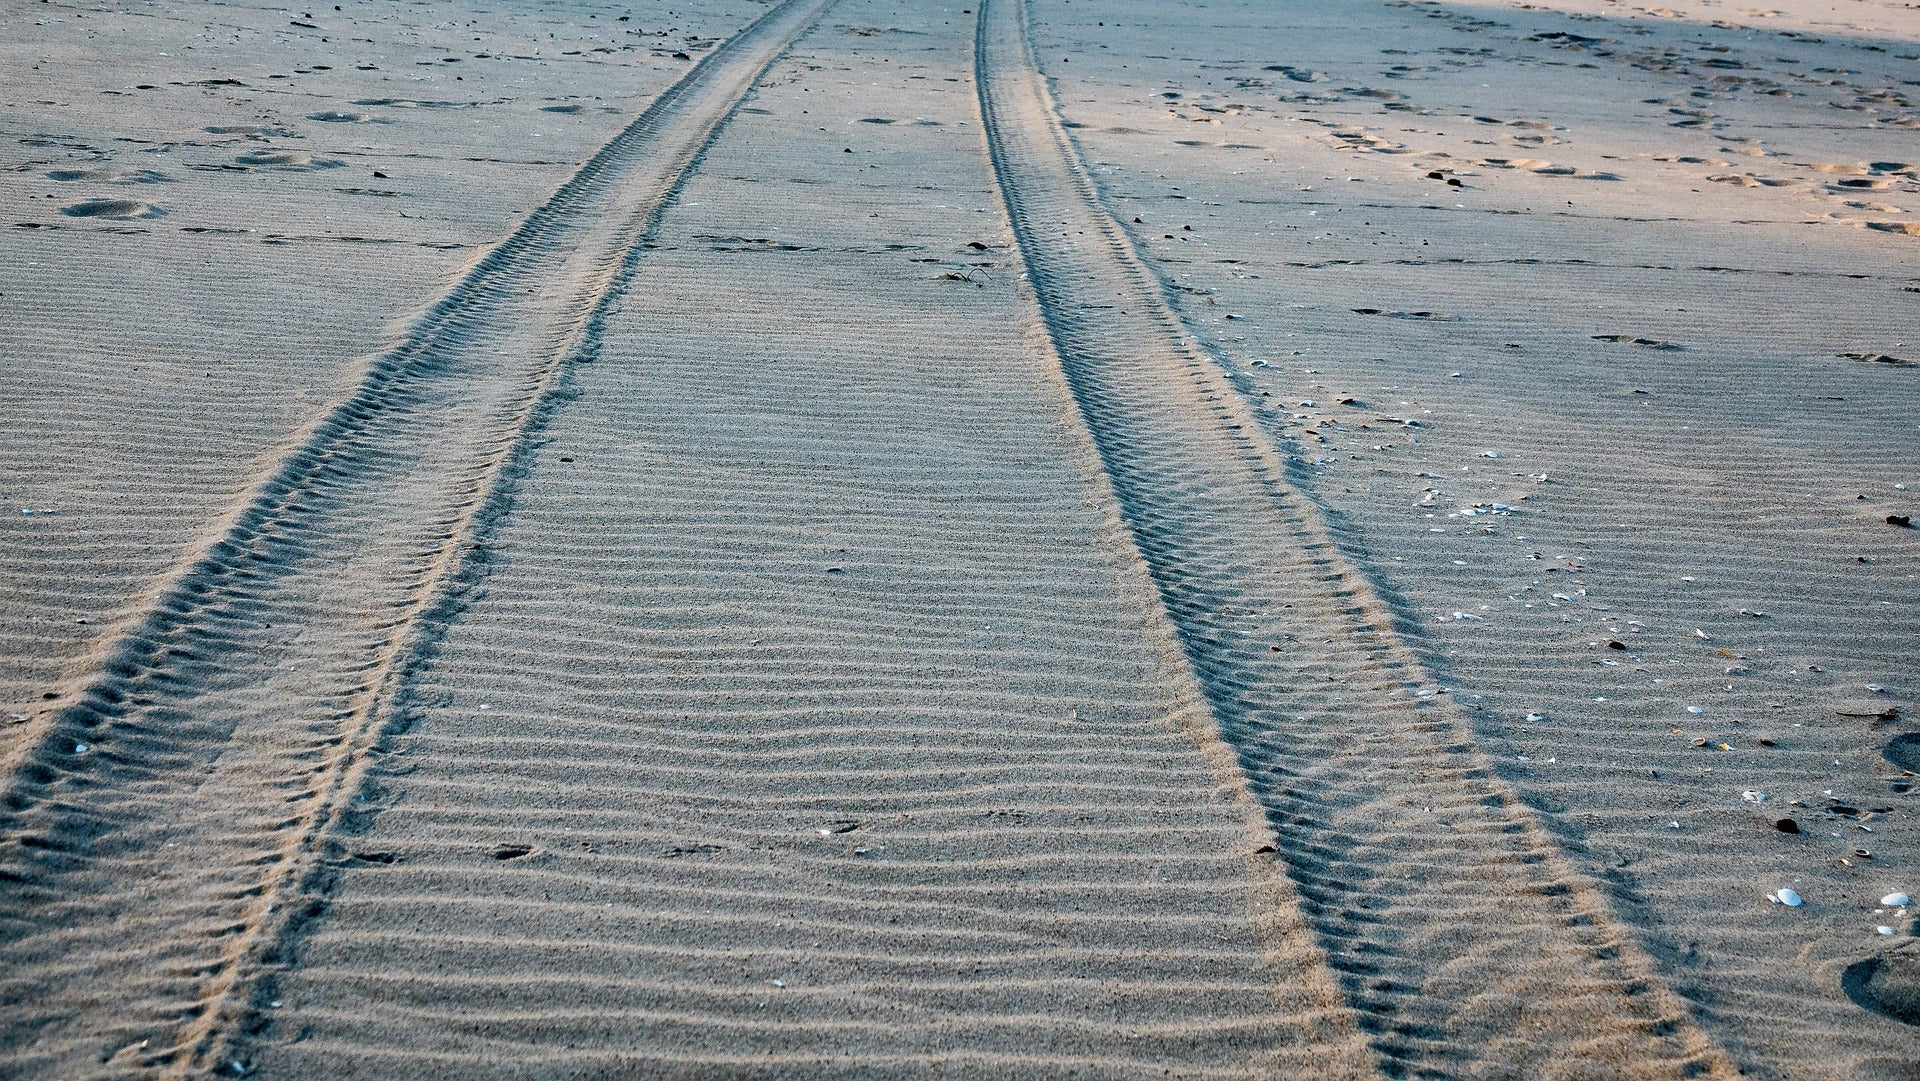 Jeep tracks in sand - Freewaters